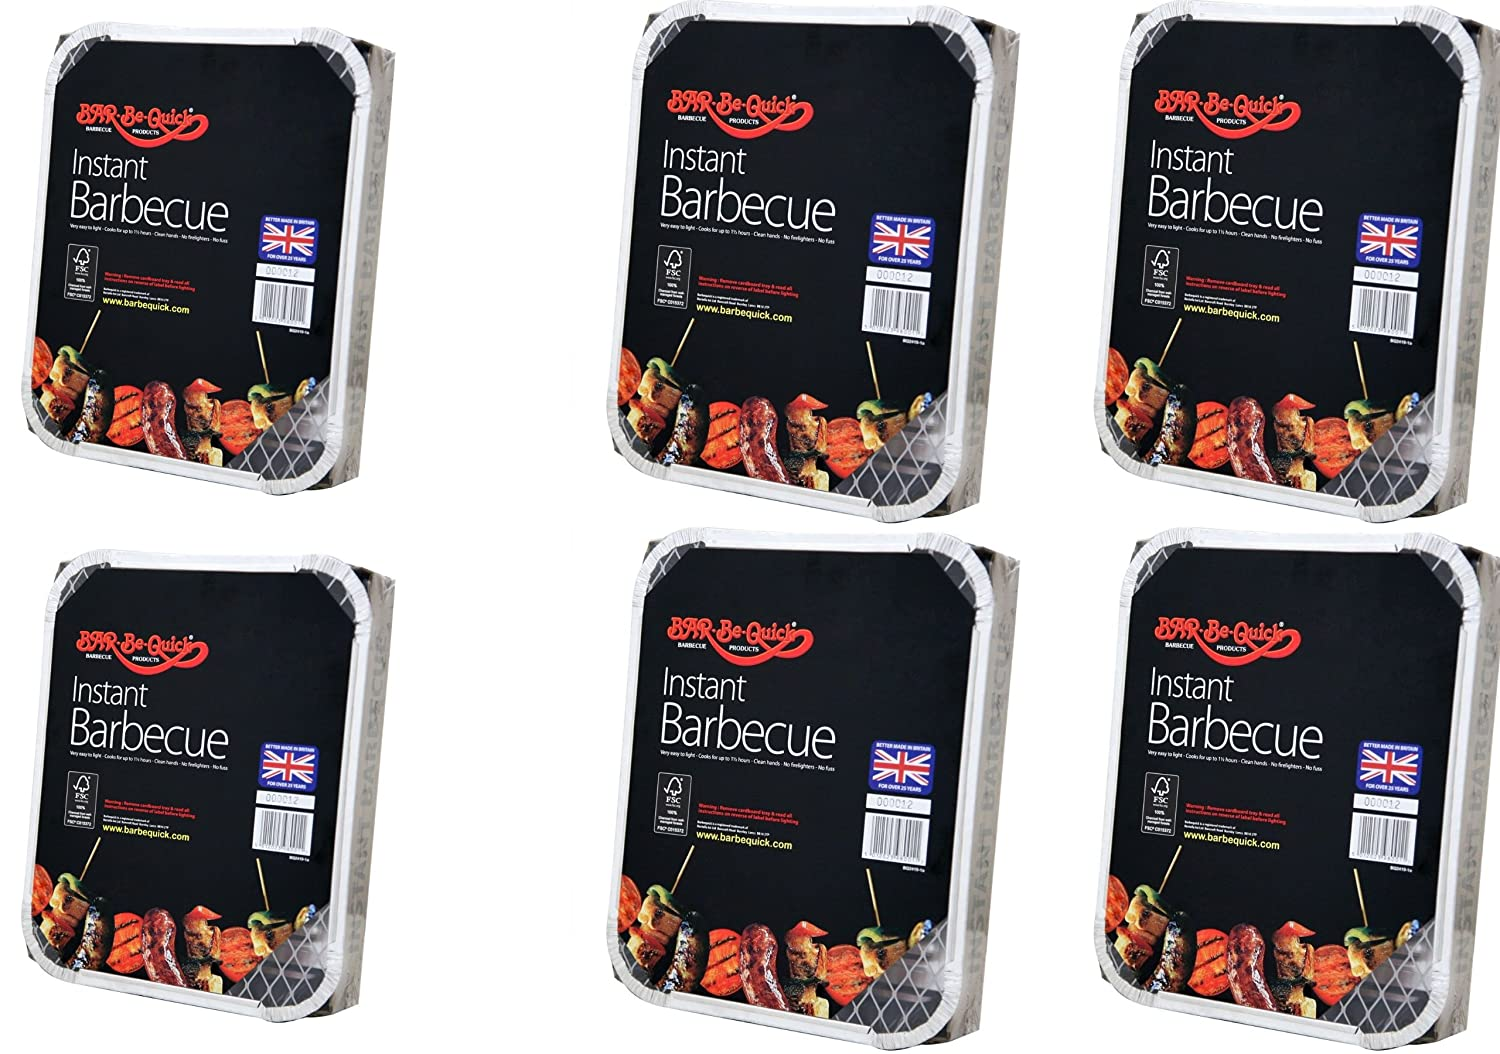 6 X Bar-Be-Quick Instant Barbecue packs- Each pack feeds 4 people-World's best brand leading disposable BBQ